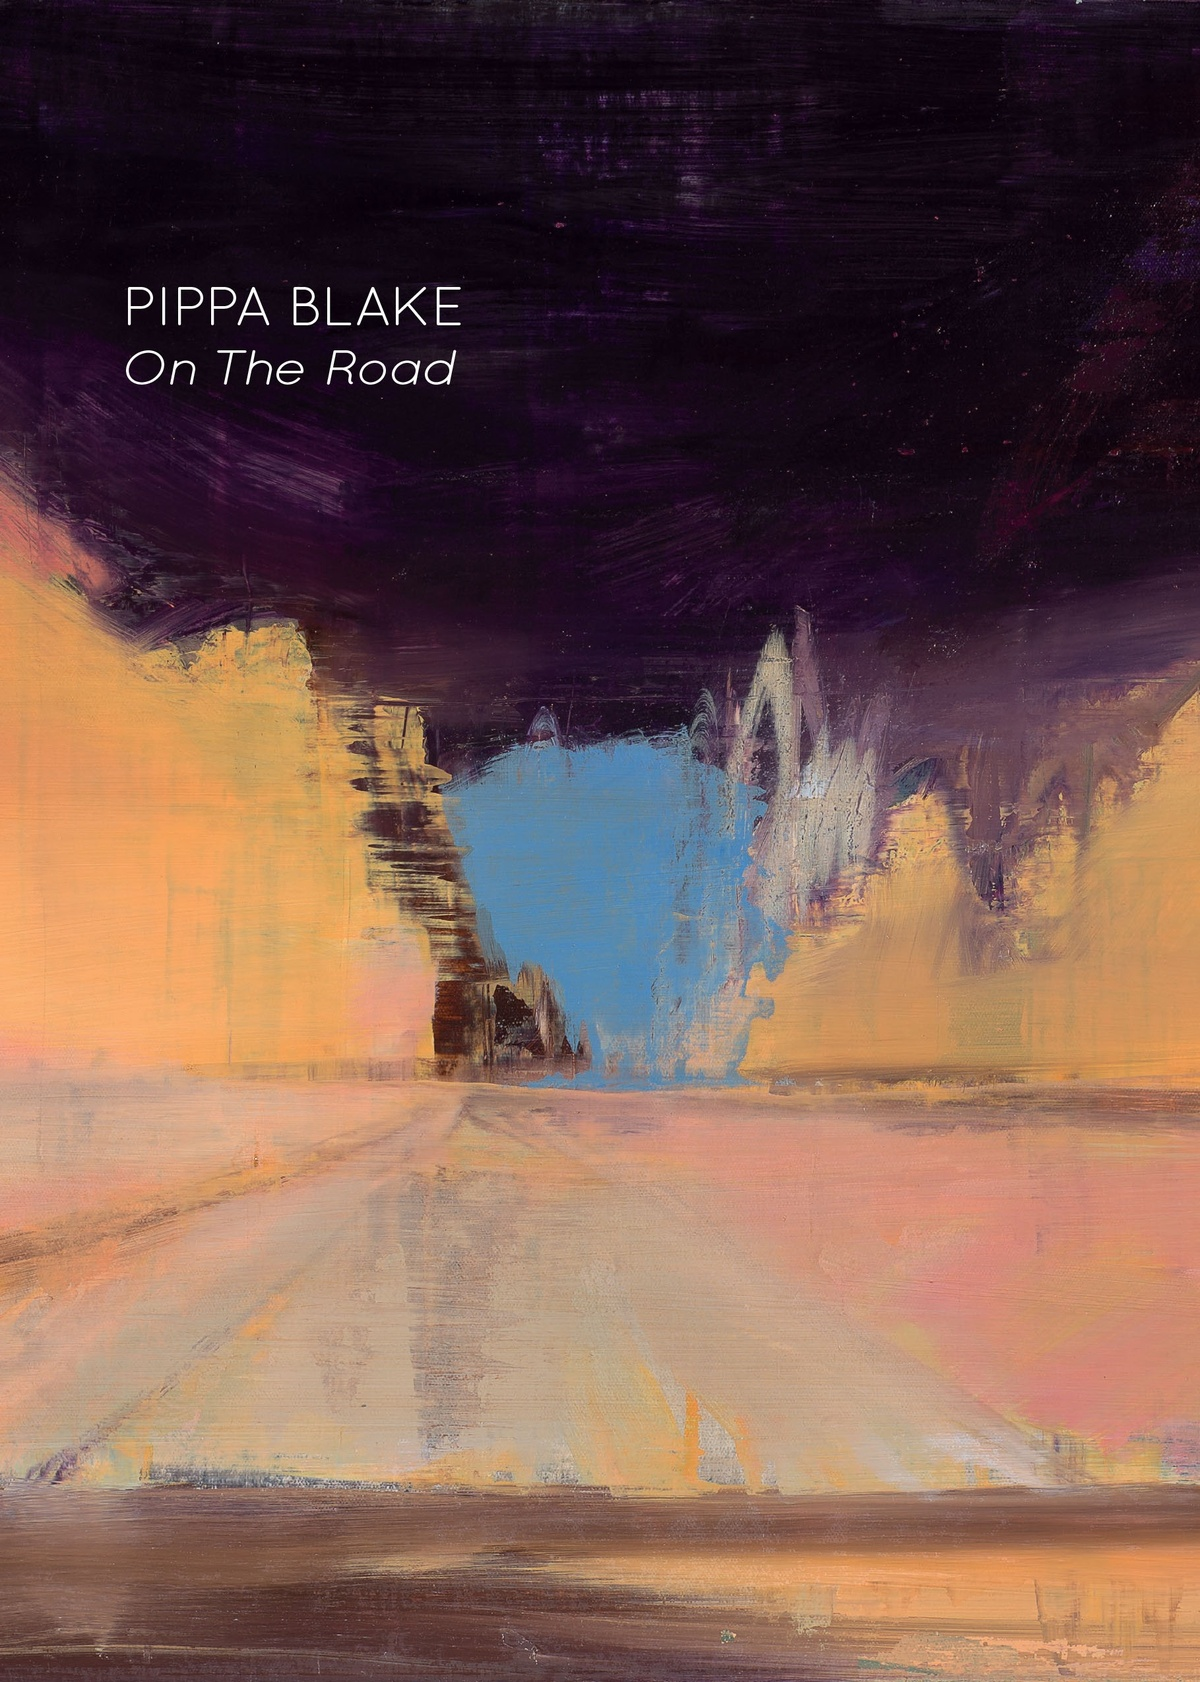 Pippa Blake, On The Road